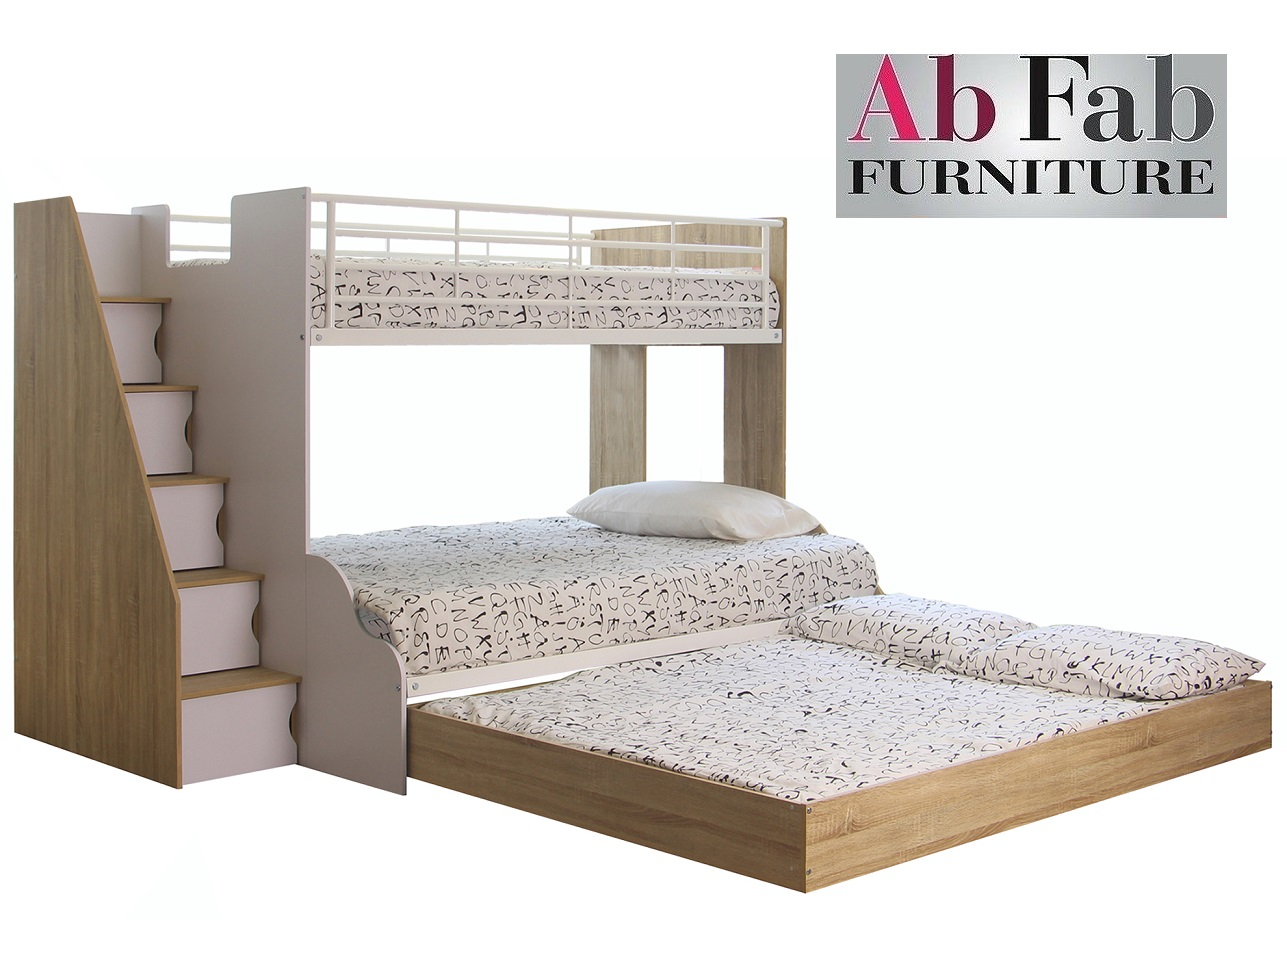 Now 1169 Levin Plus Deluxe Double Single Trio Bunk Bed Stairs Cupboard Double Trundle White Oak Ab Fab Furniture Penrith